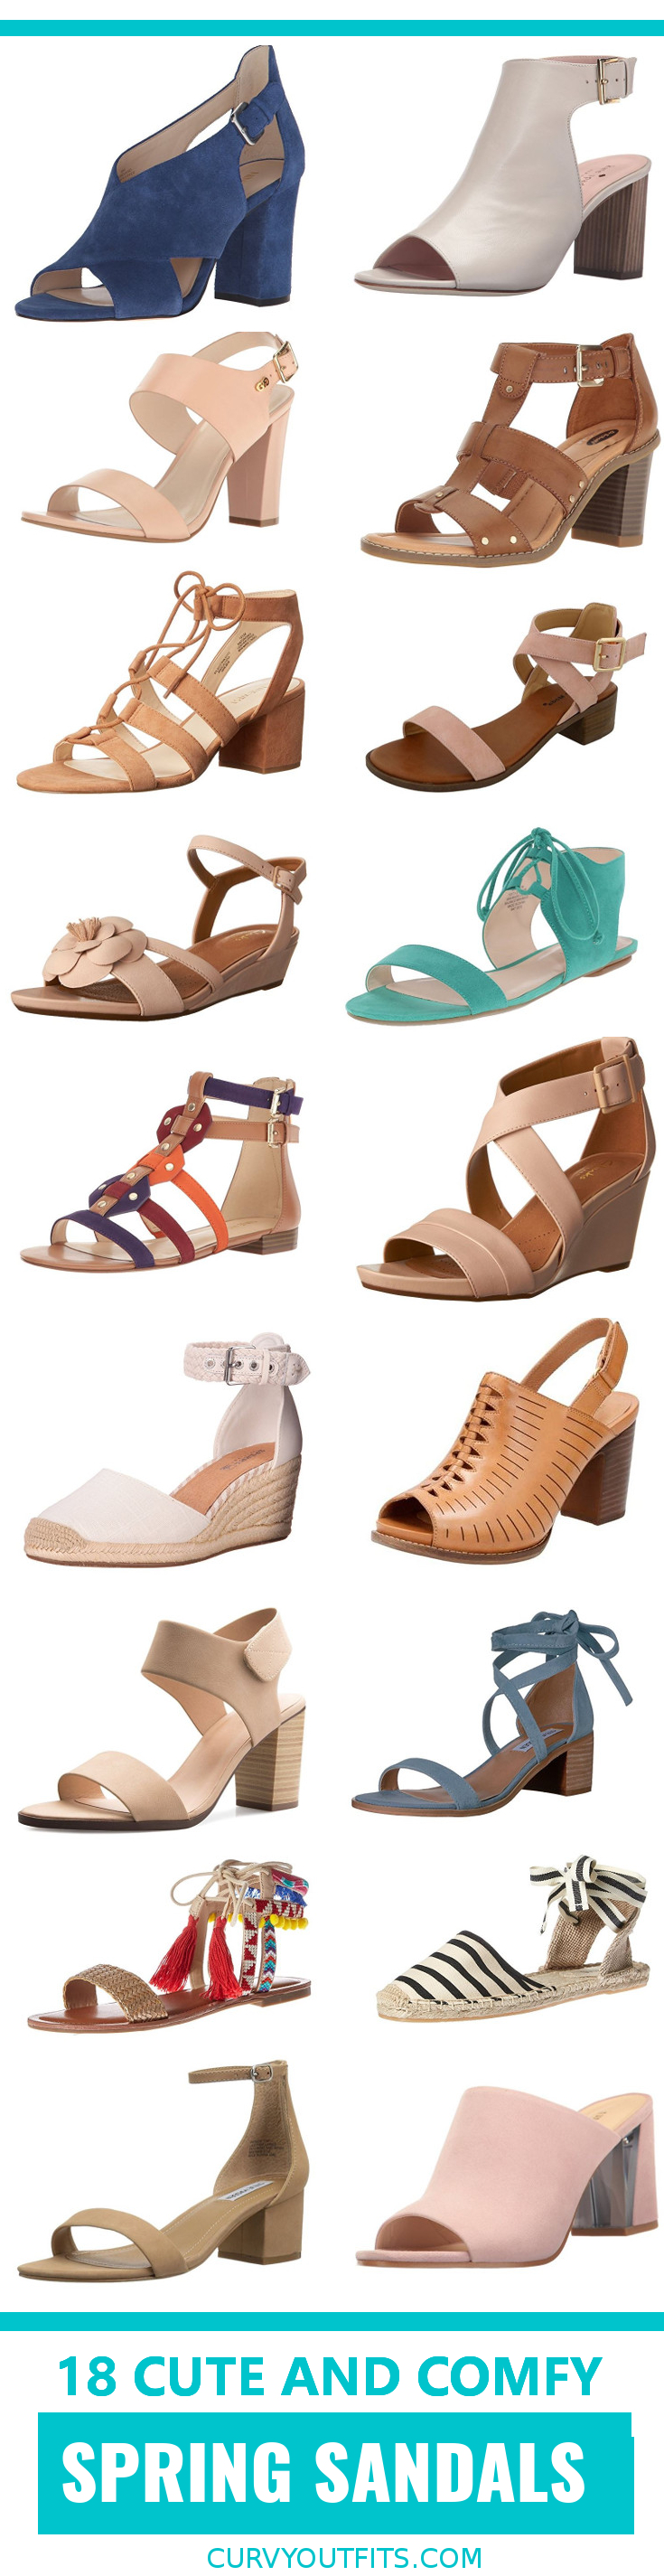 18 cute spring sandals 1 - 18 spring sandals that are both cute and comfortable